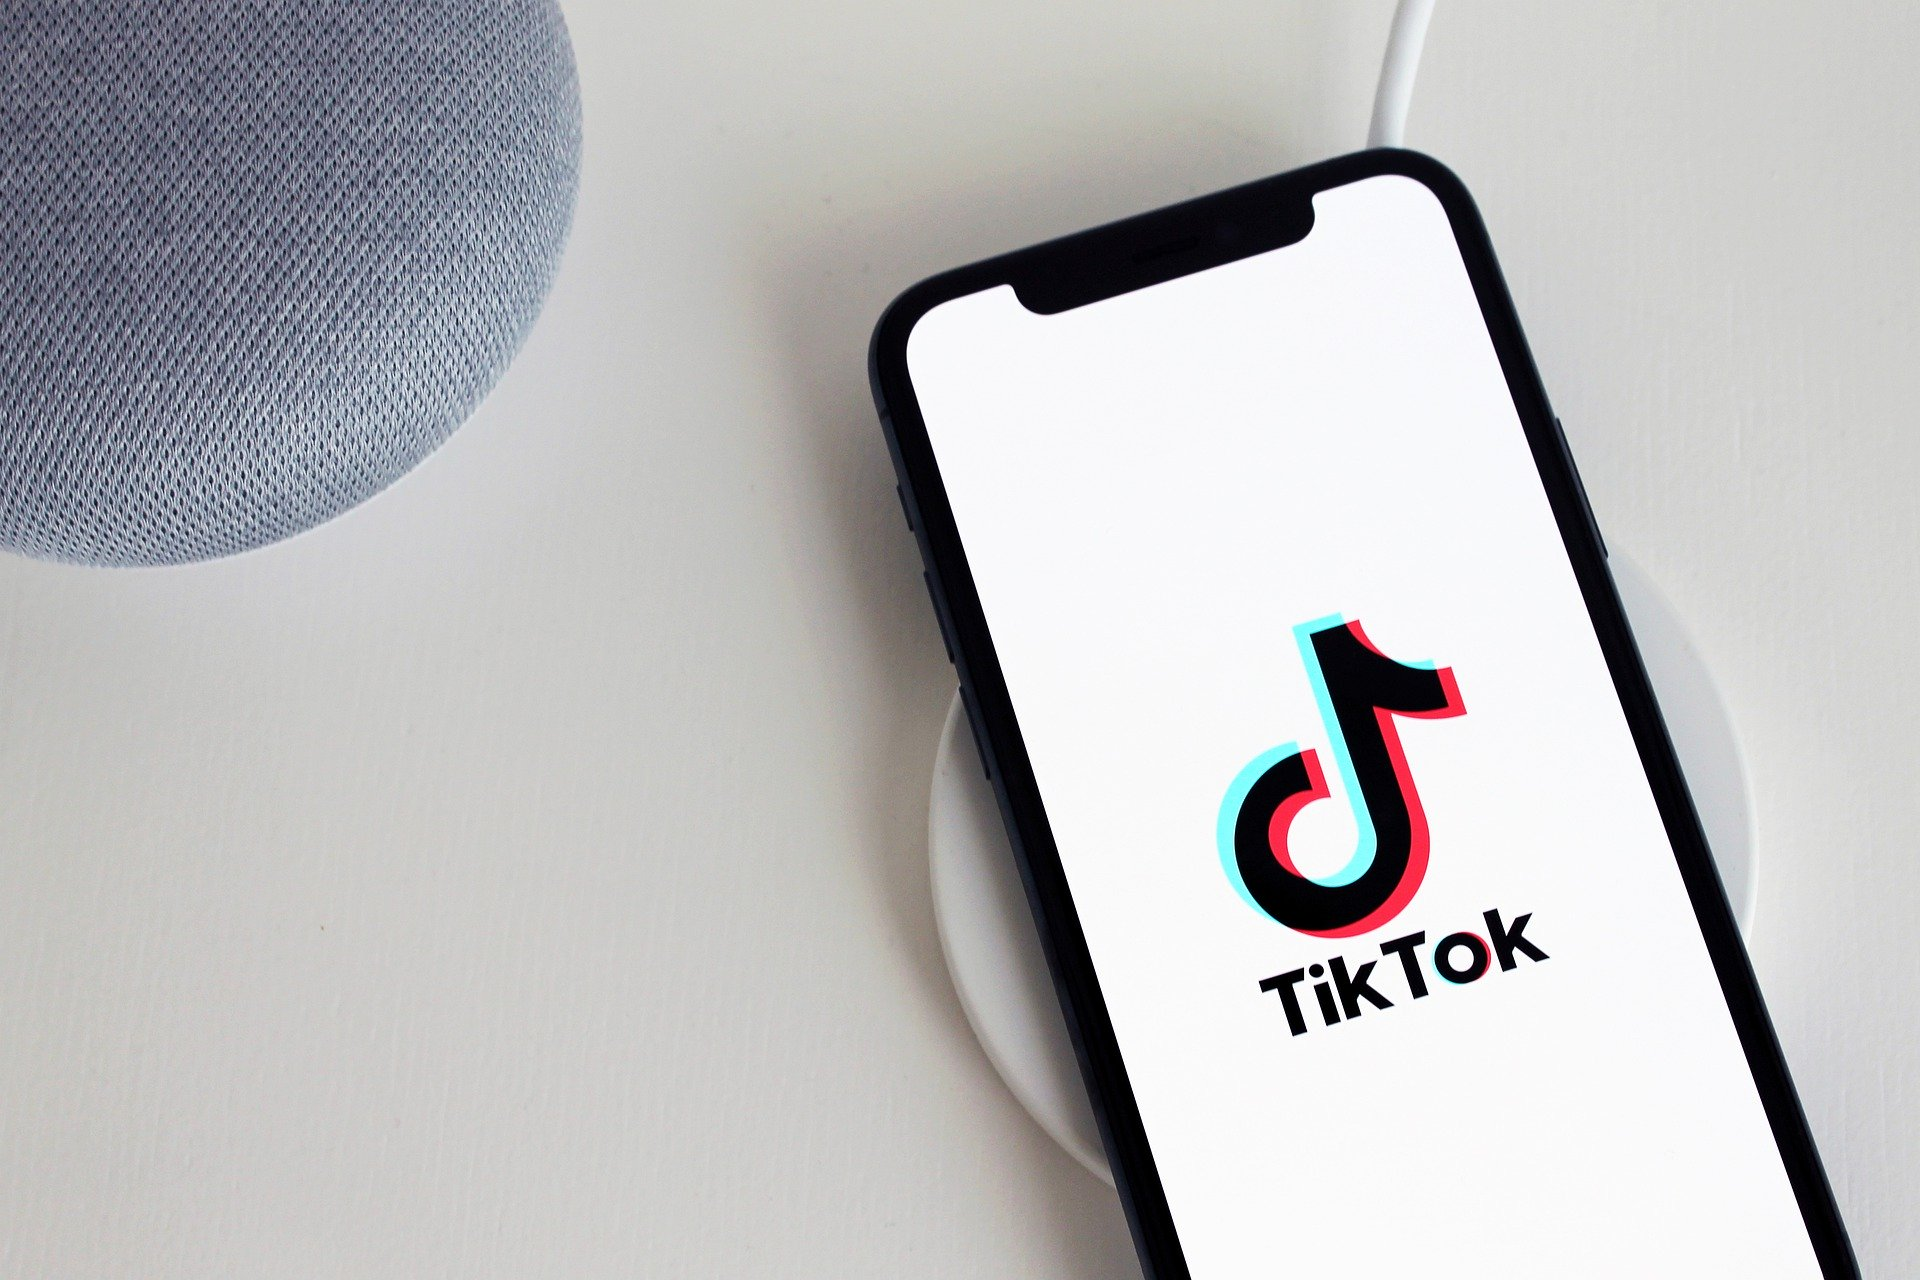 L'application TikTok